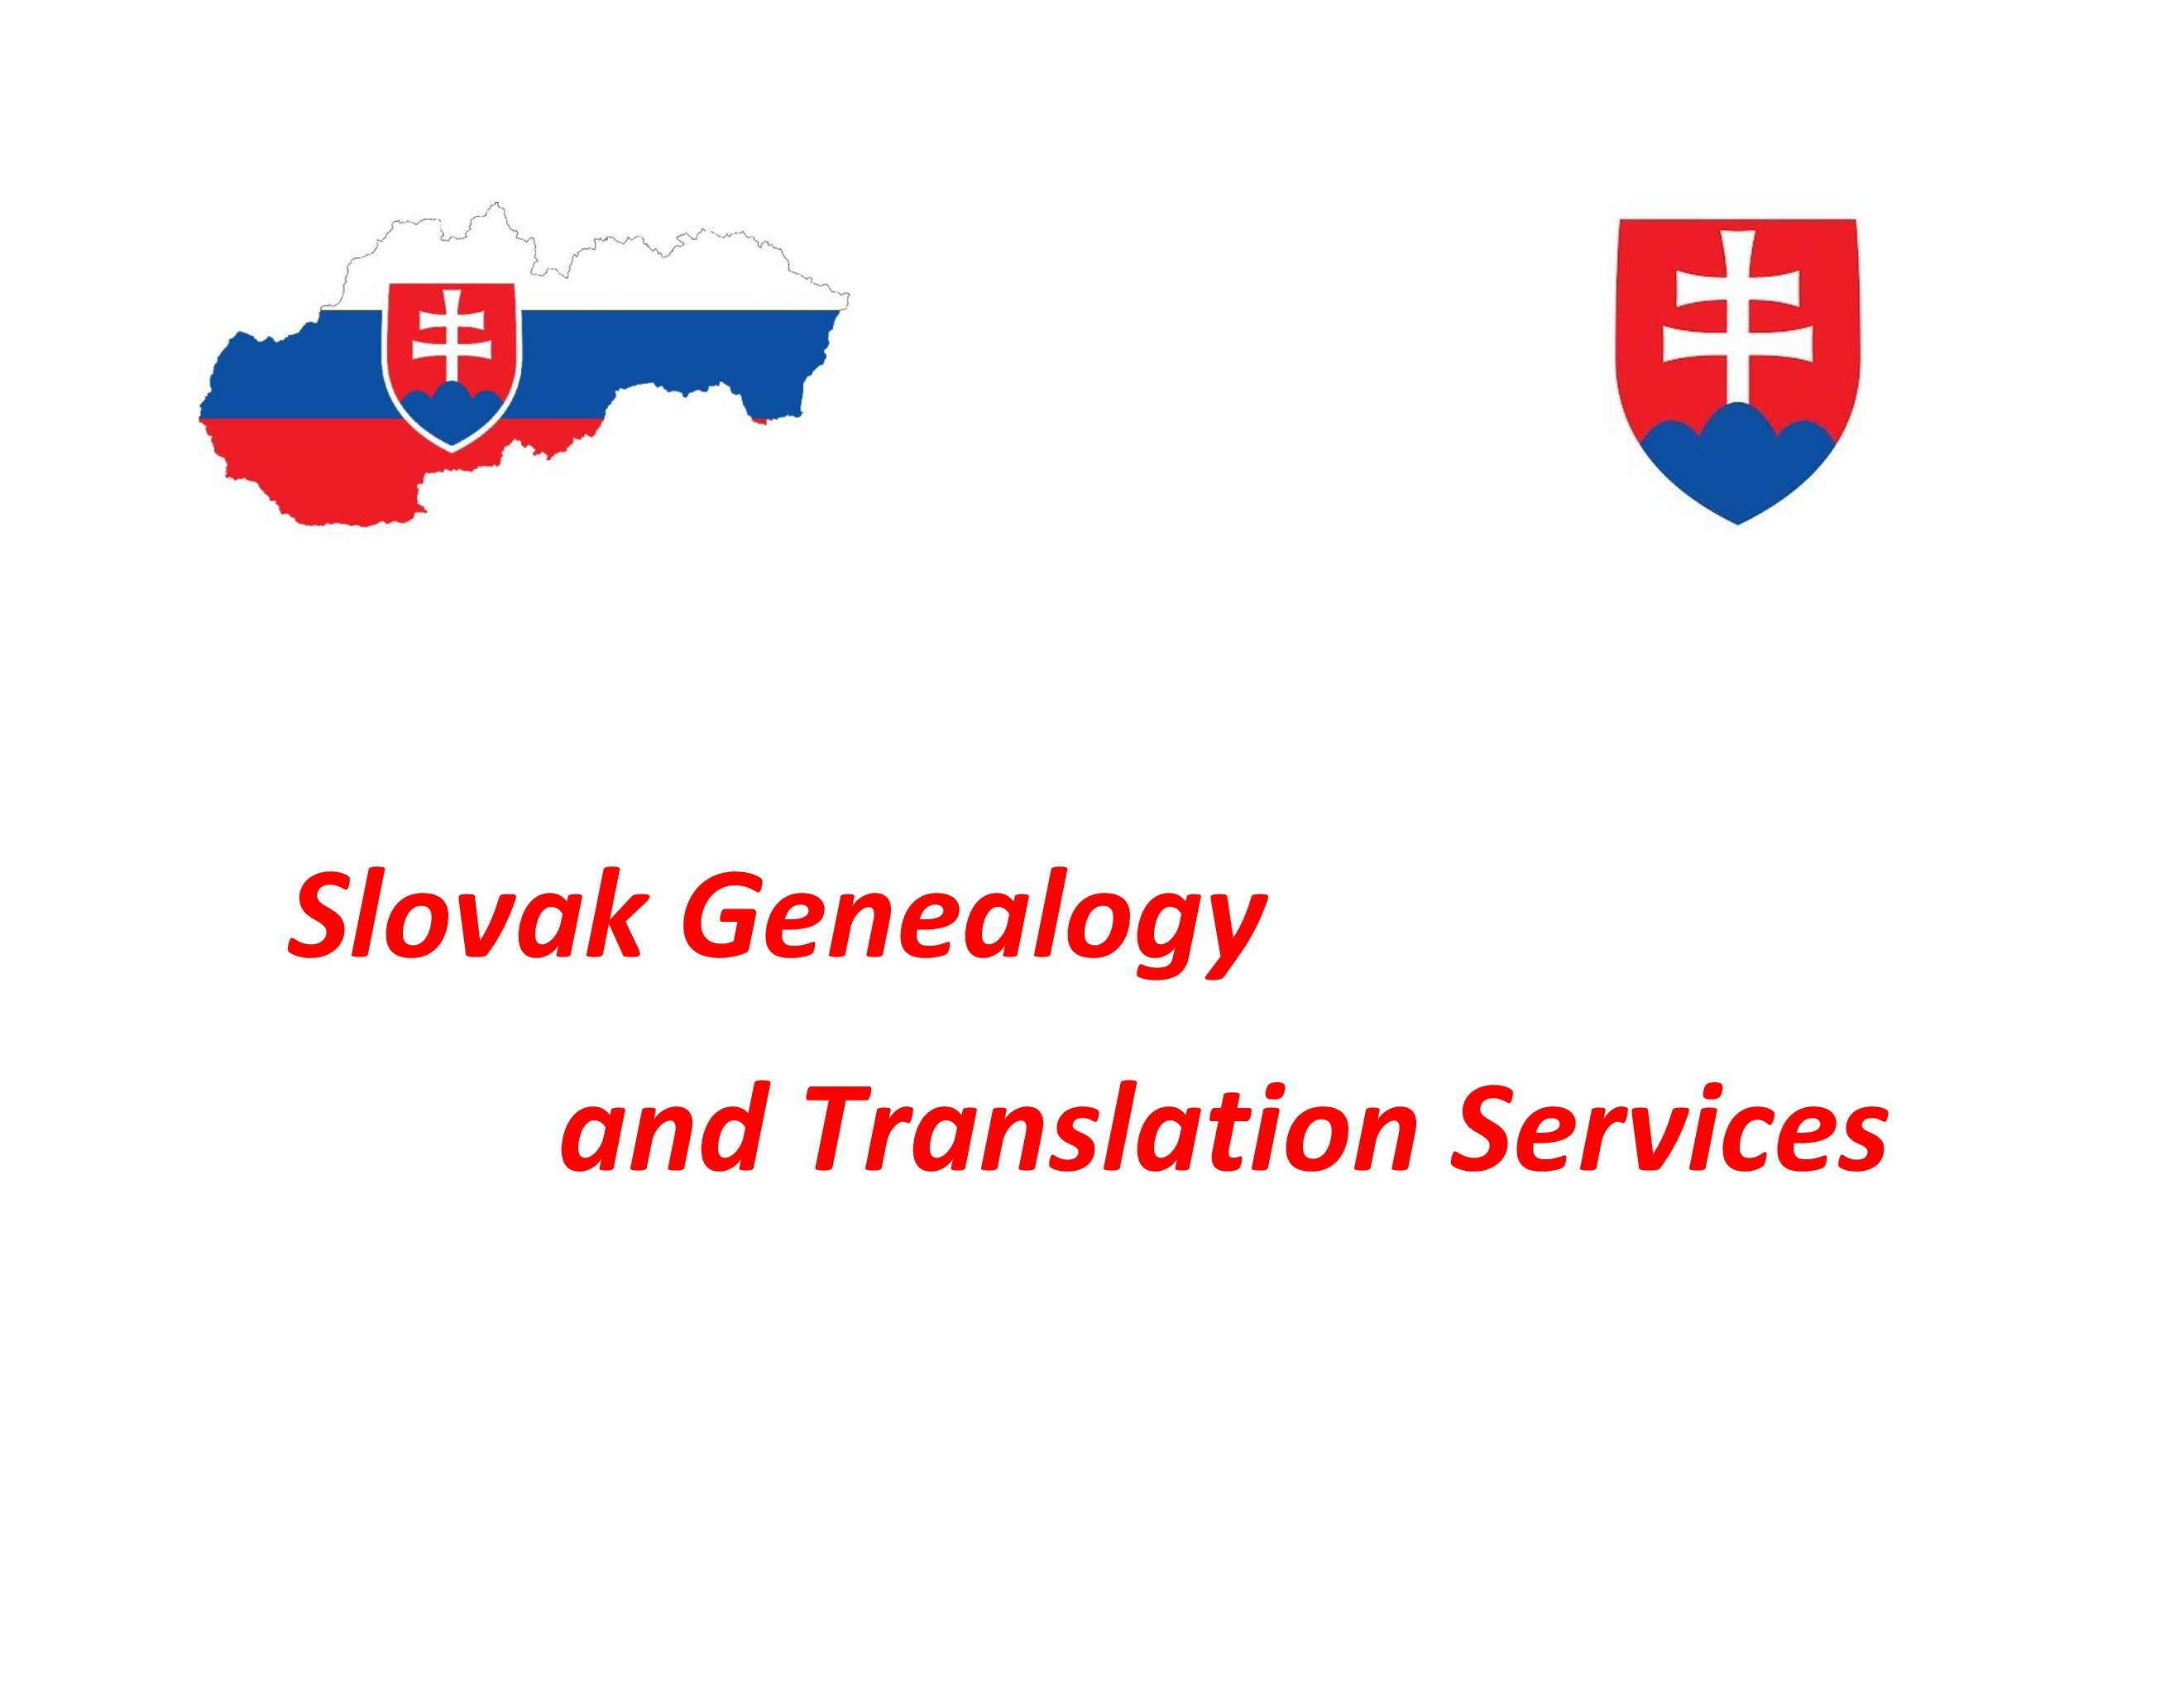 Slovak Genealogy and Translation Services